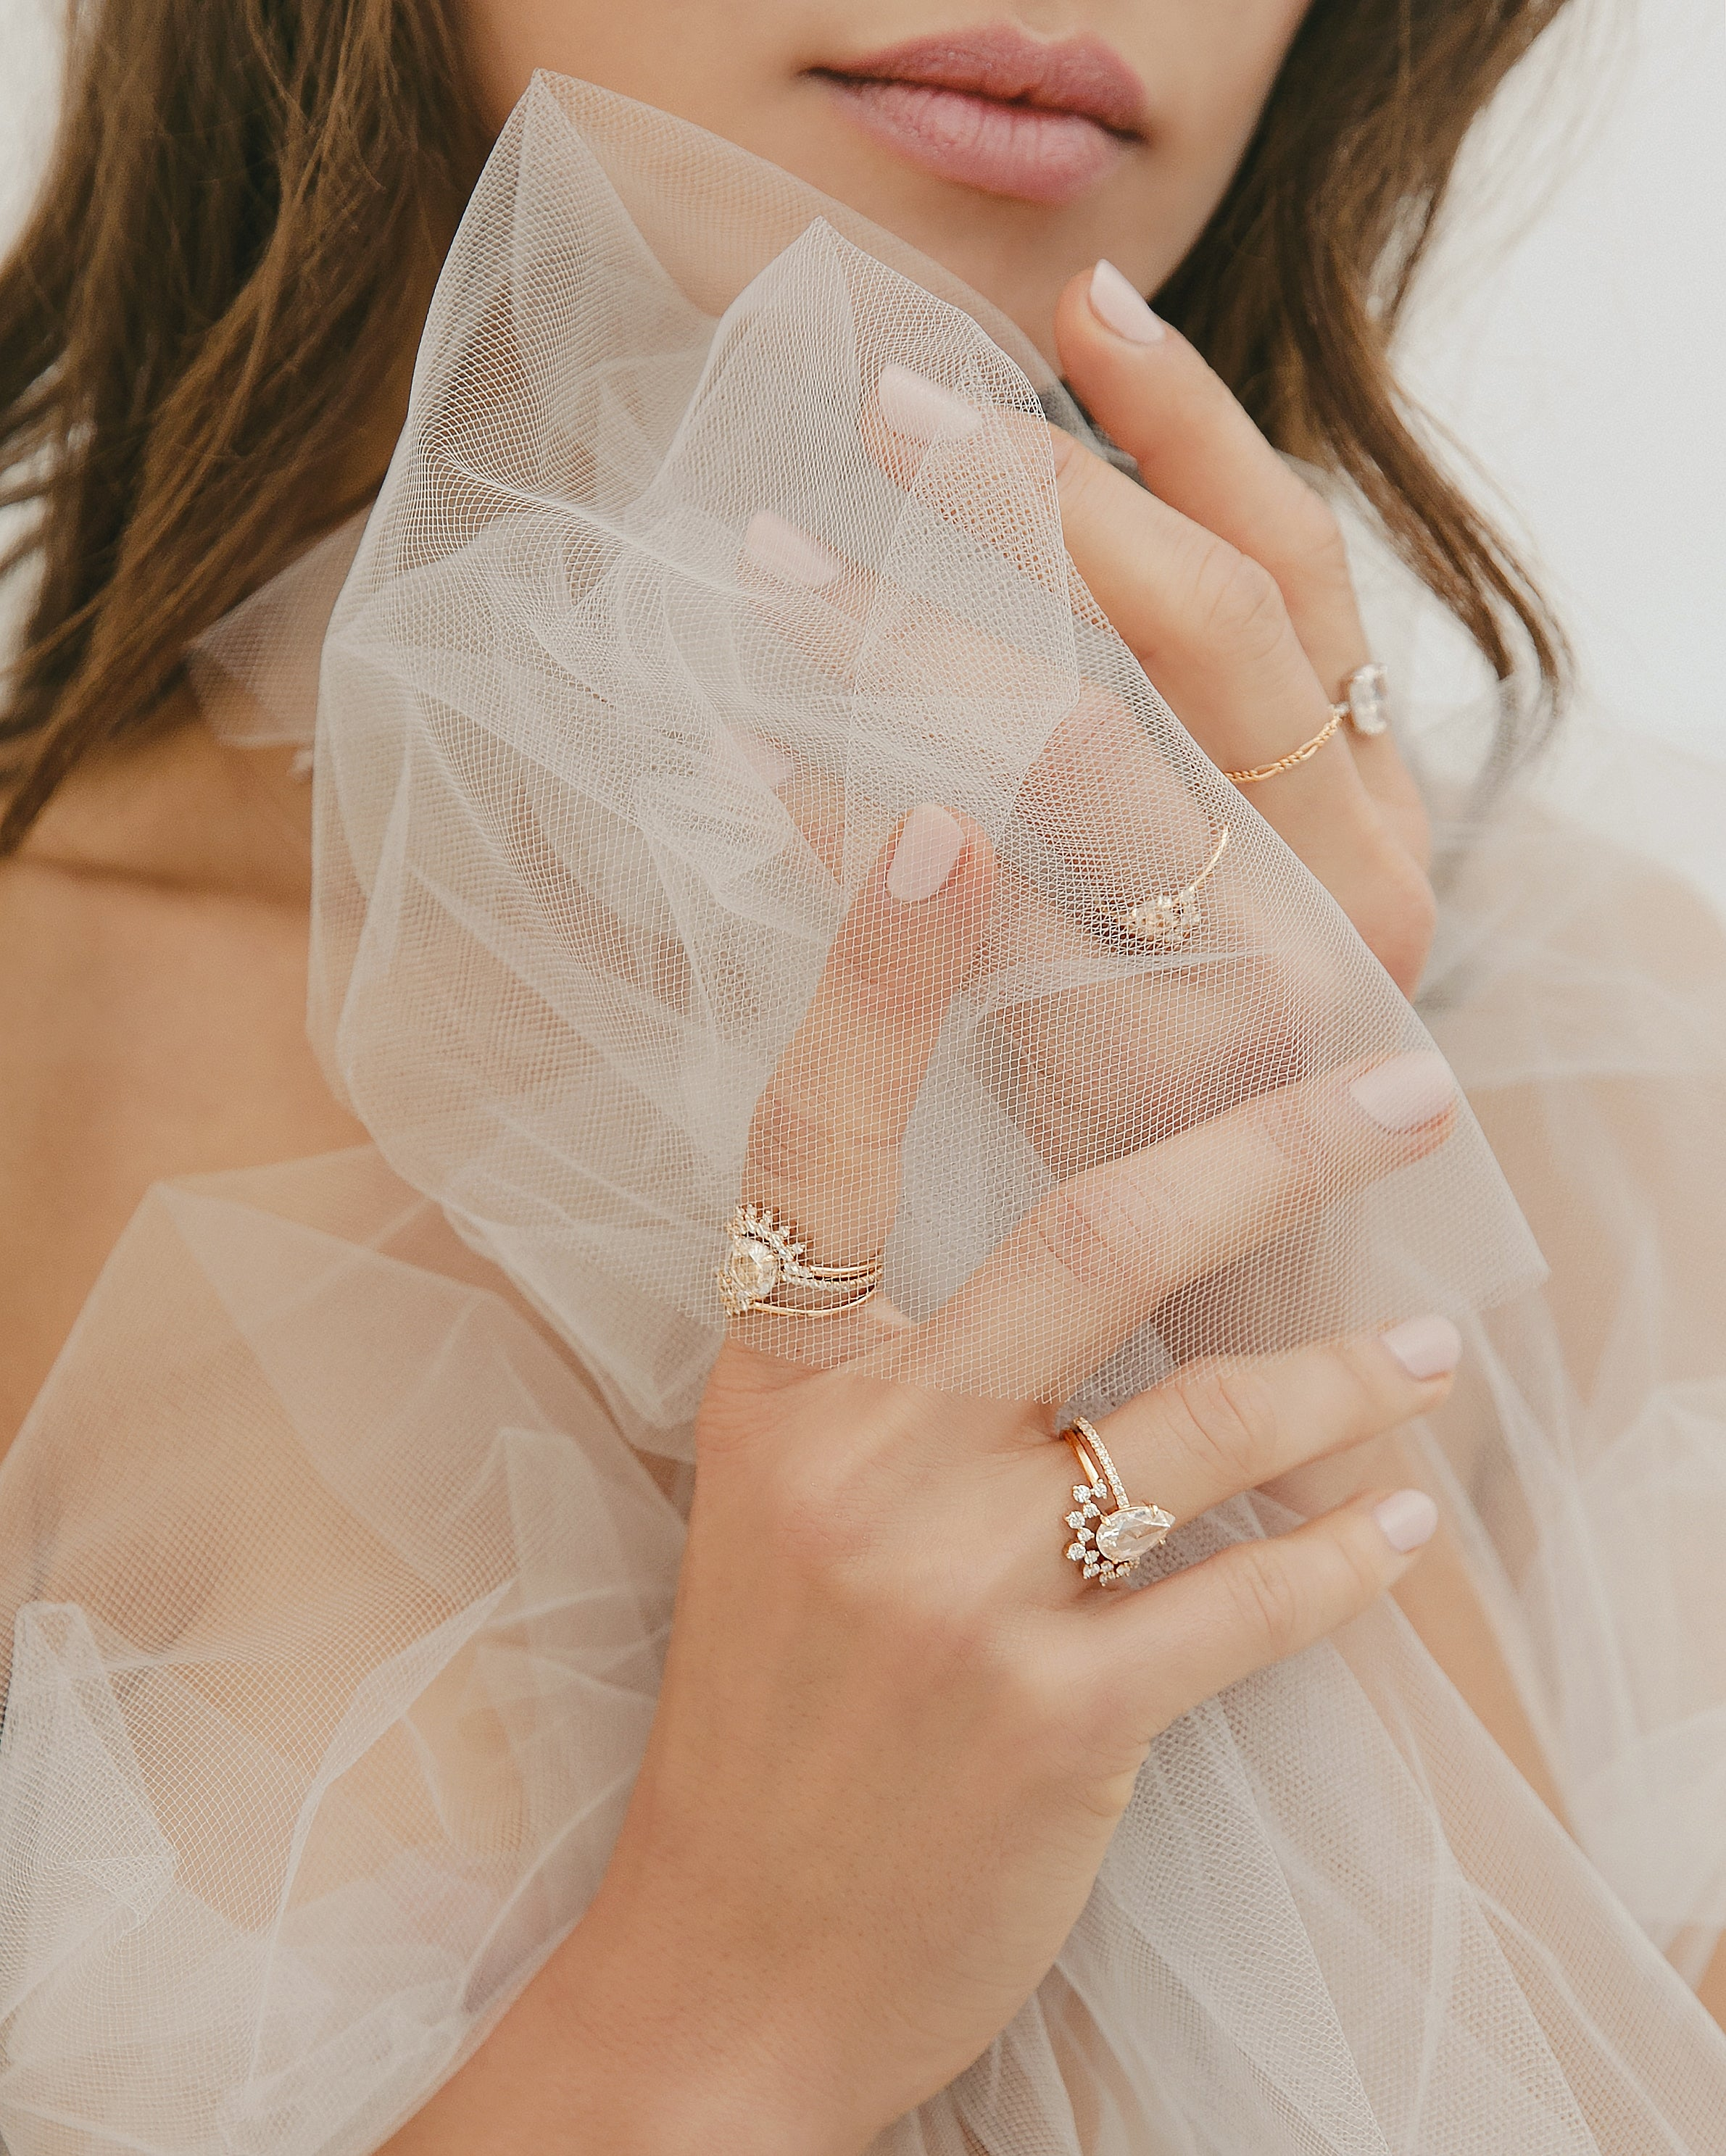 everett fine jewelry custom engagement rings lookbook